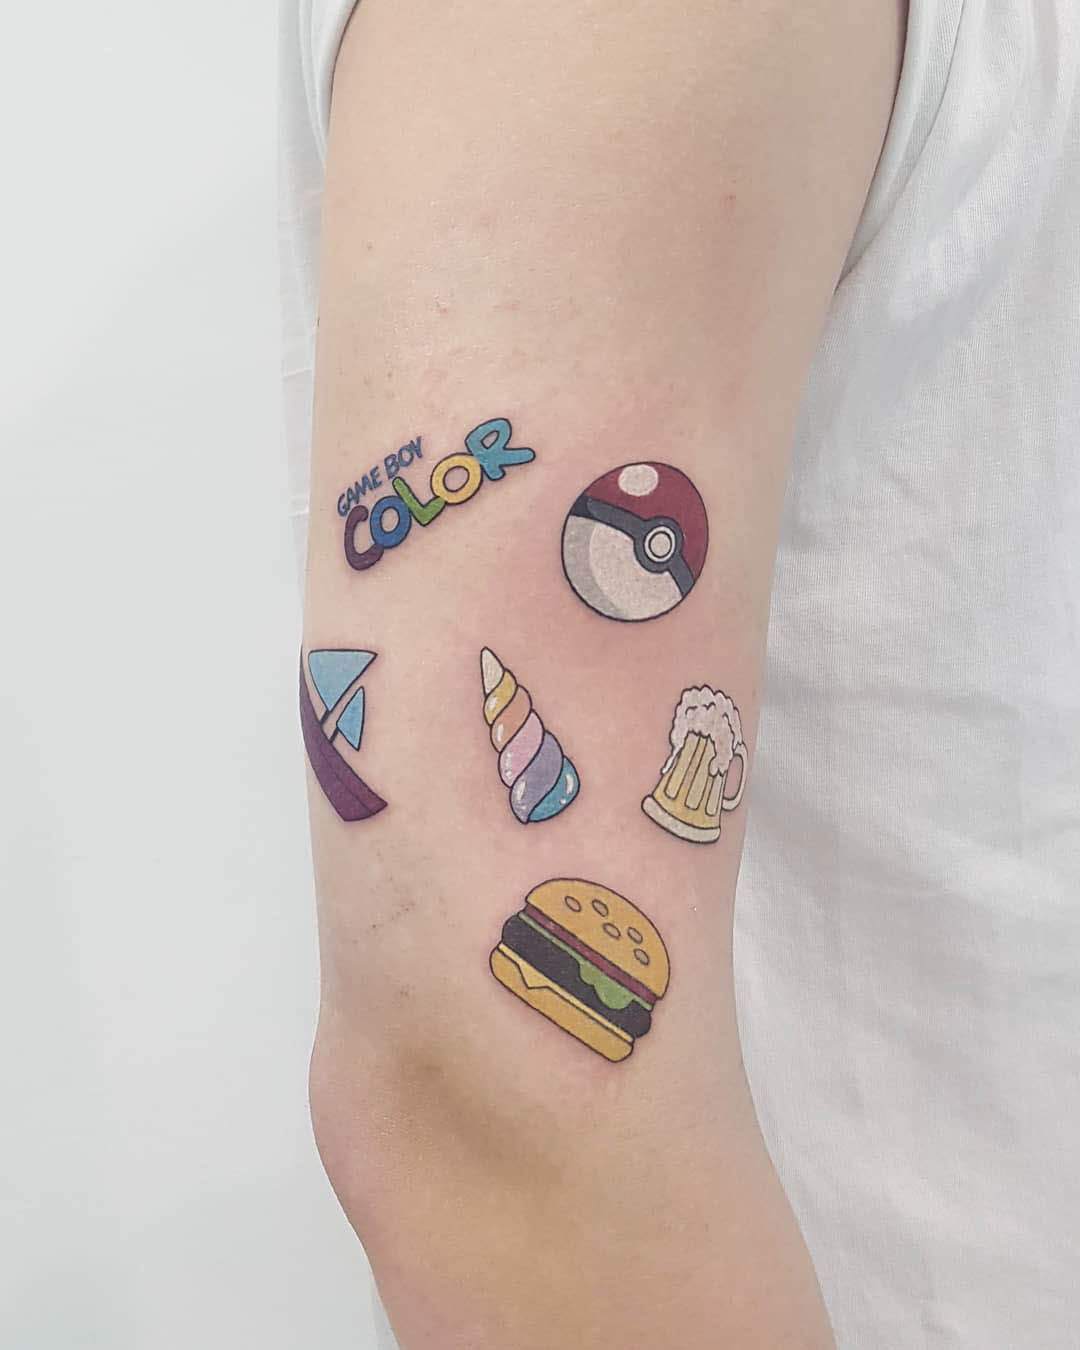 small tattoos on arm gameboy